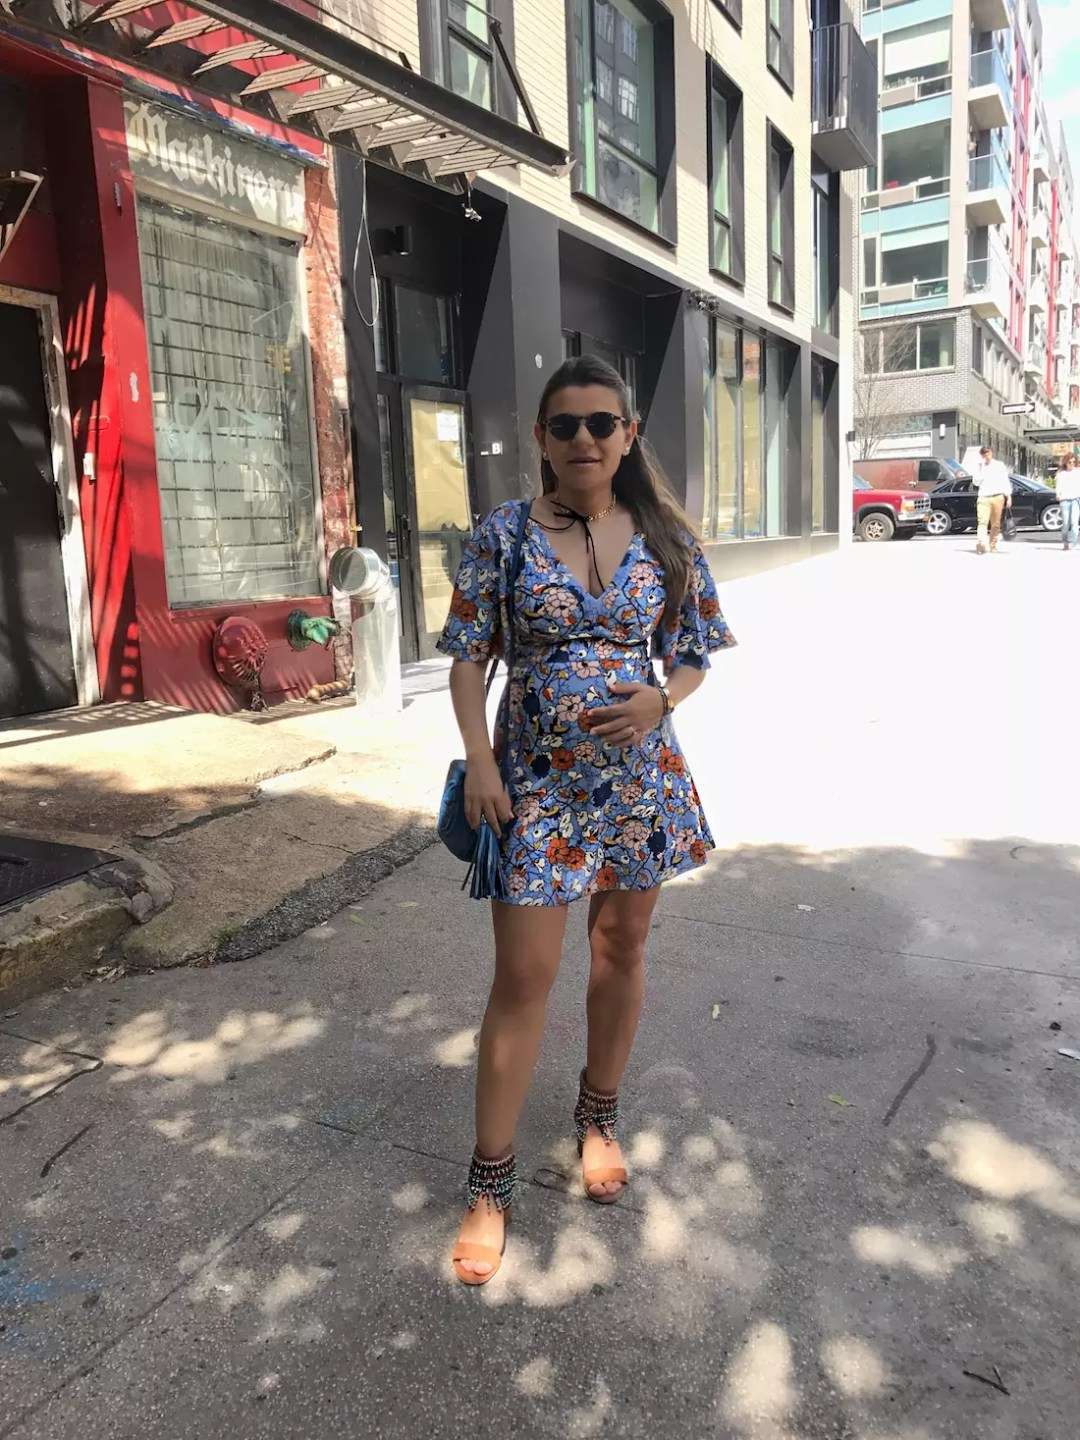 pregnancy-style-for-summer-floral-dress-zara-maternity-alley-girl-new-york-fashion-blog